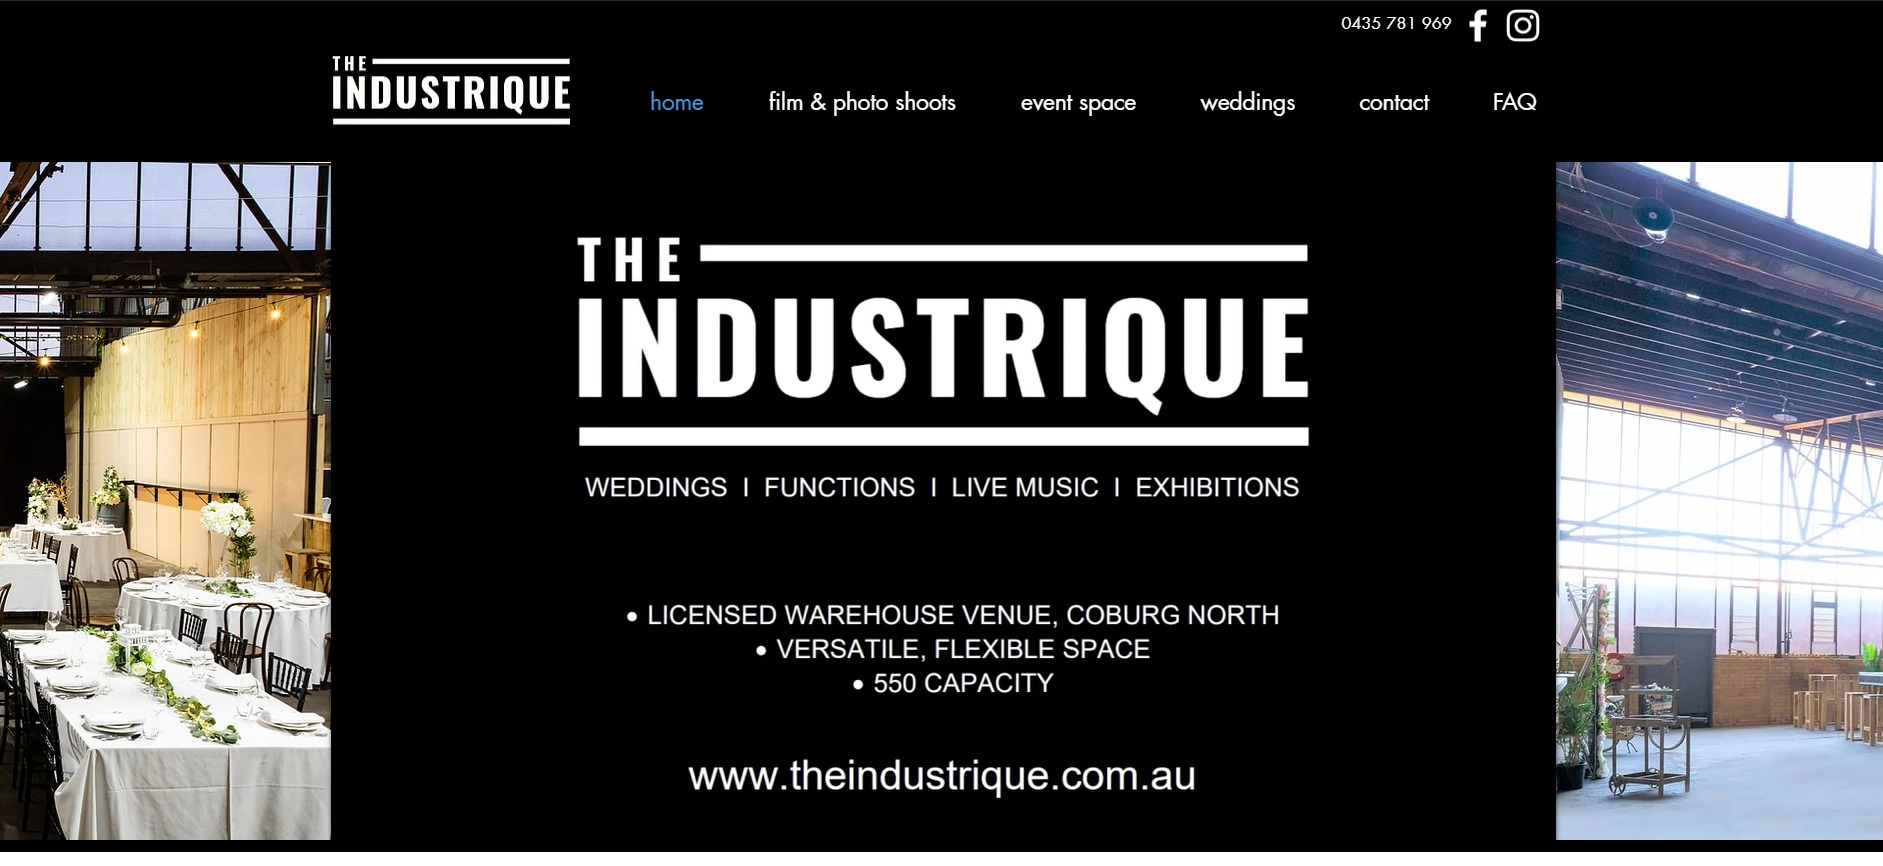 The Industrique